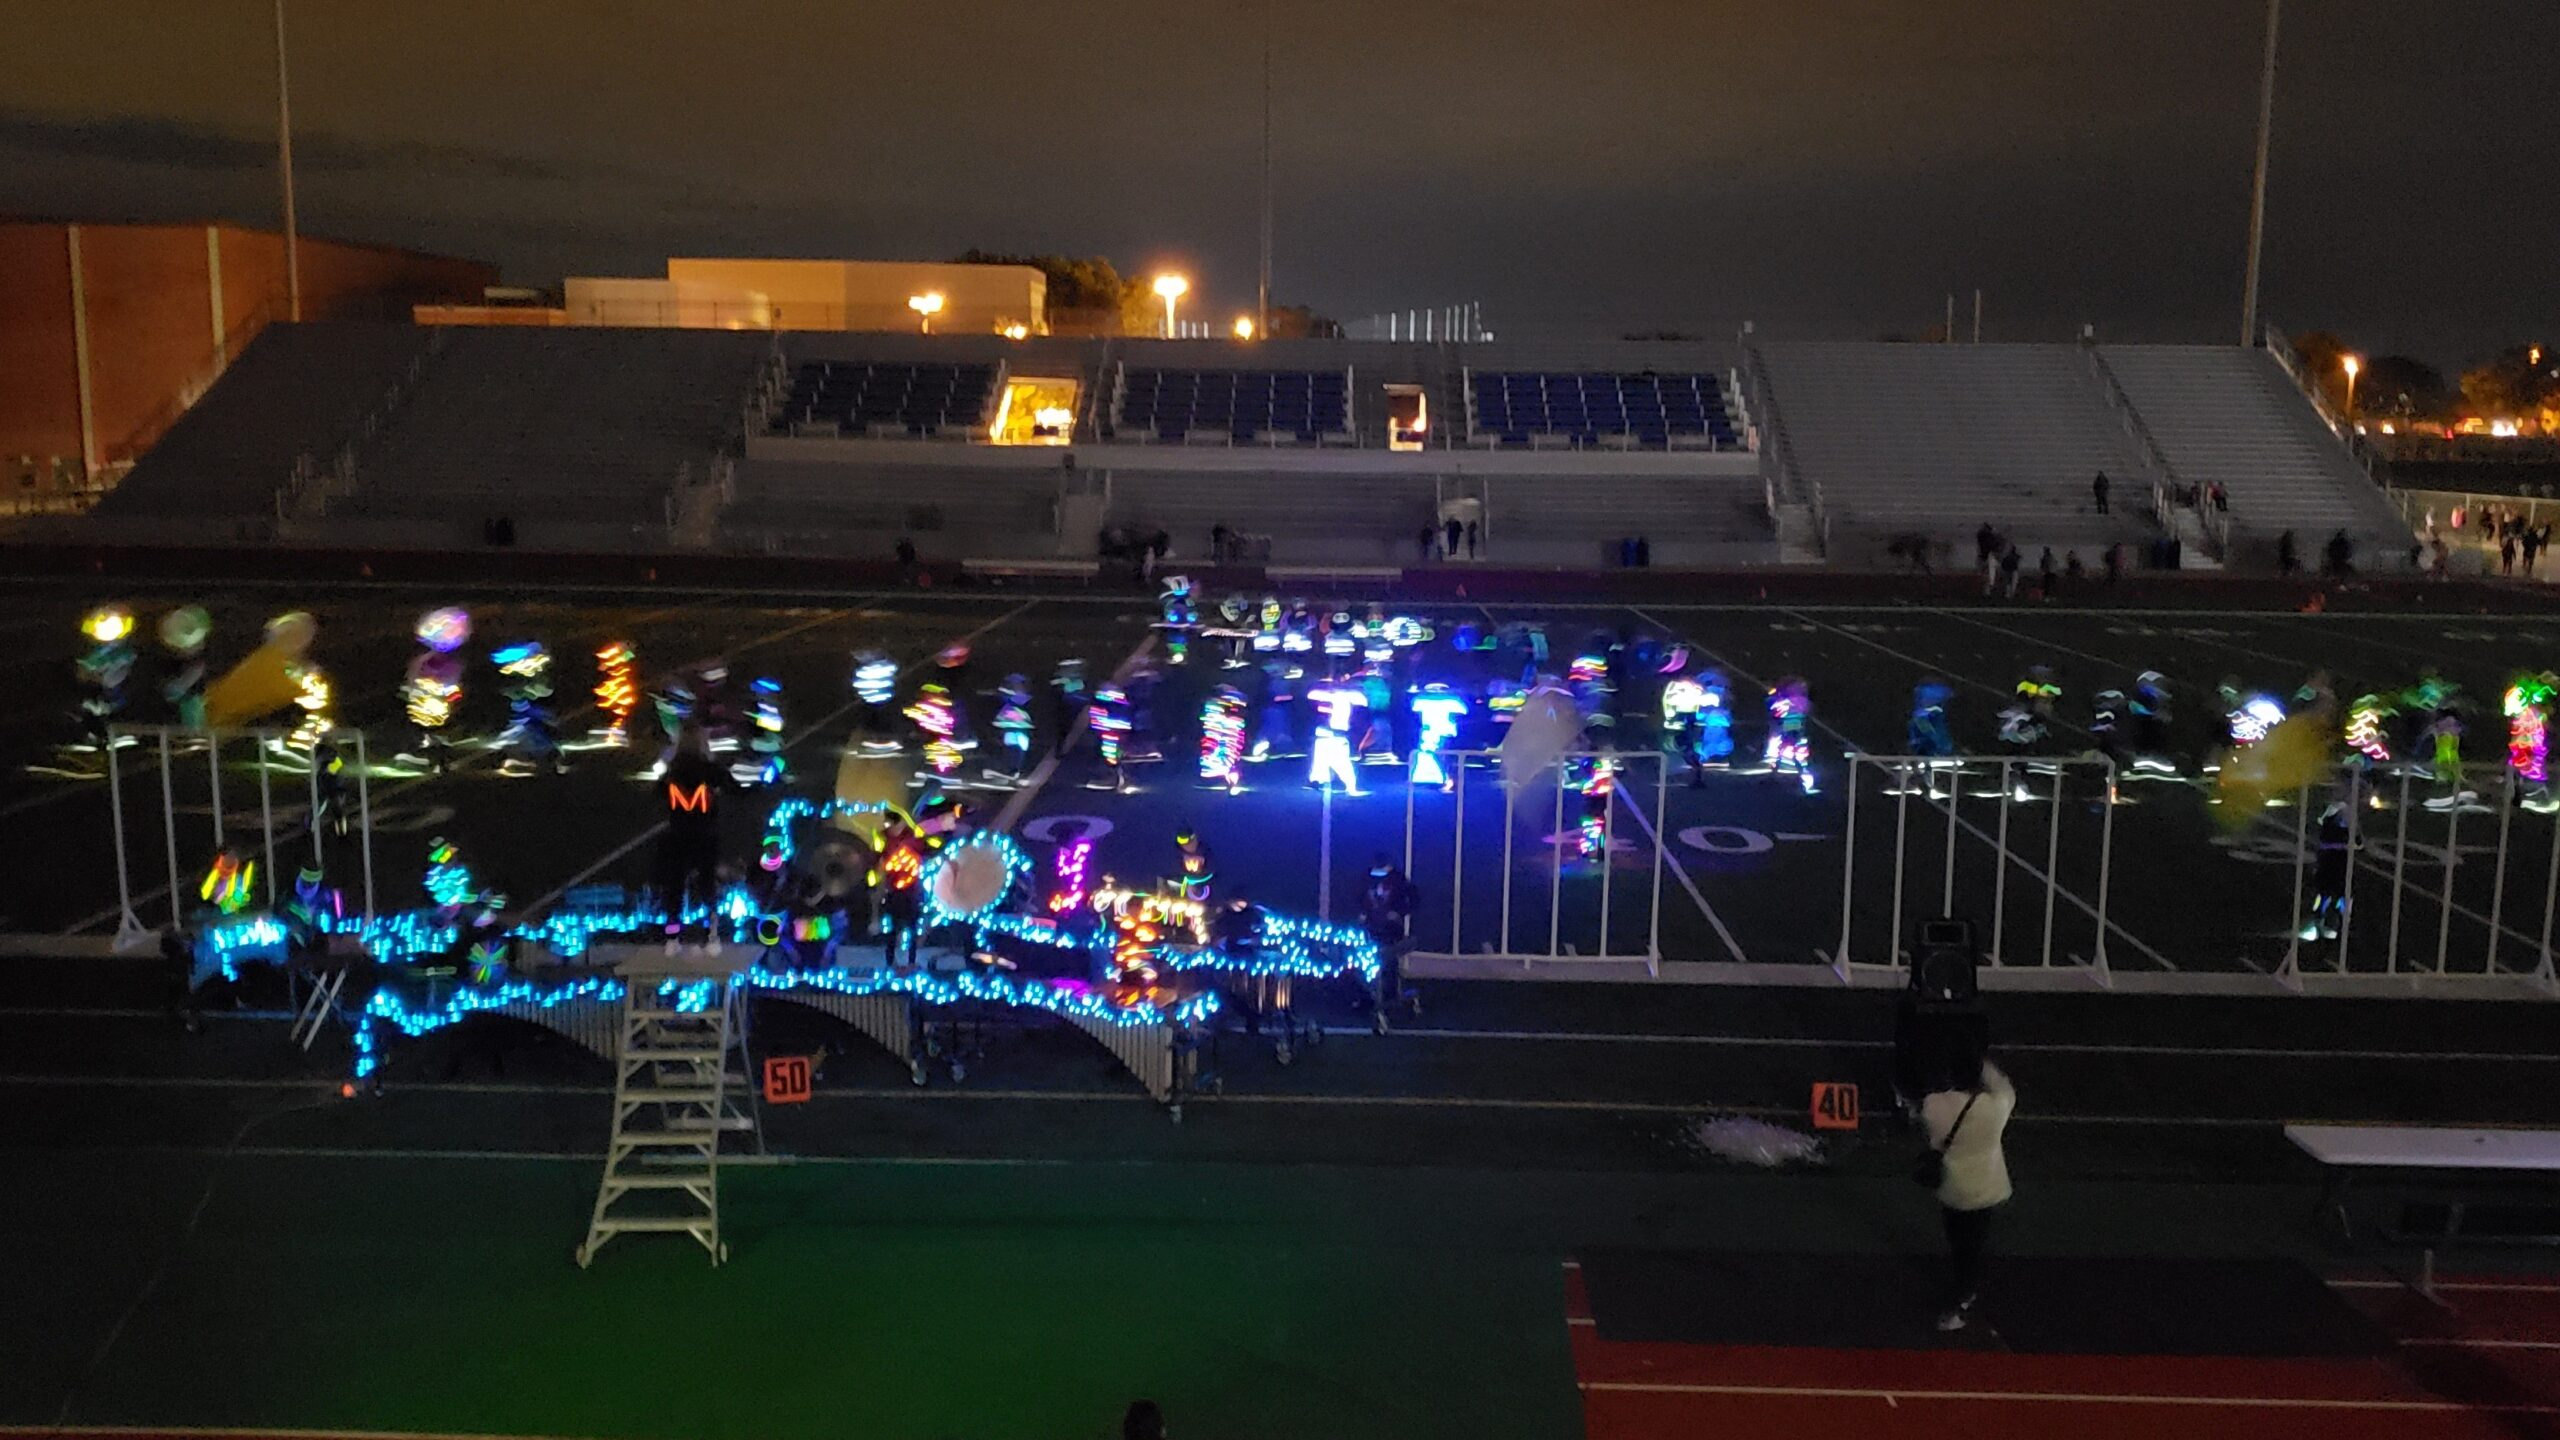 2018 Shawnee Mission West Marching Band Glow Show, courtesy Will England